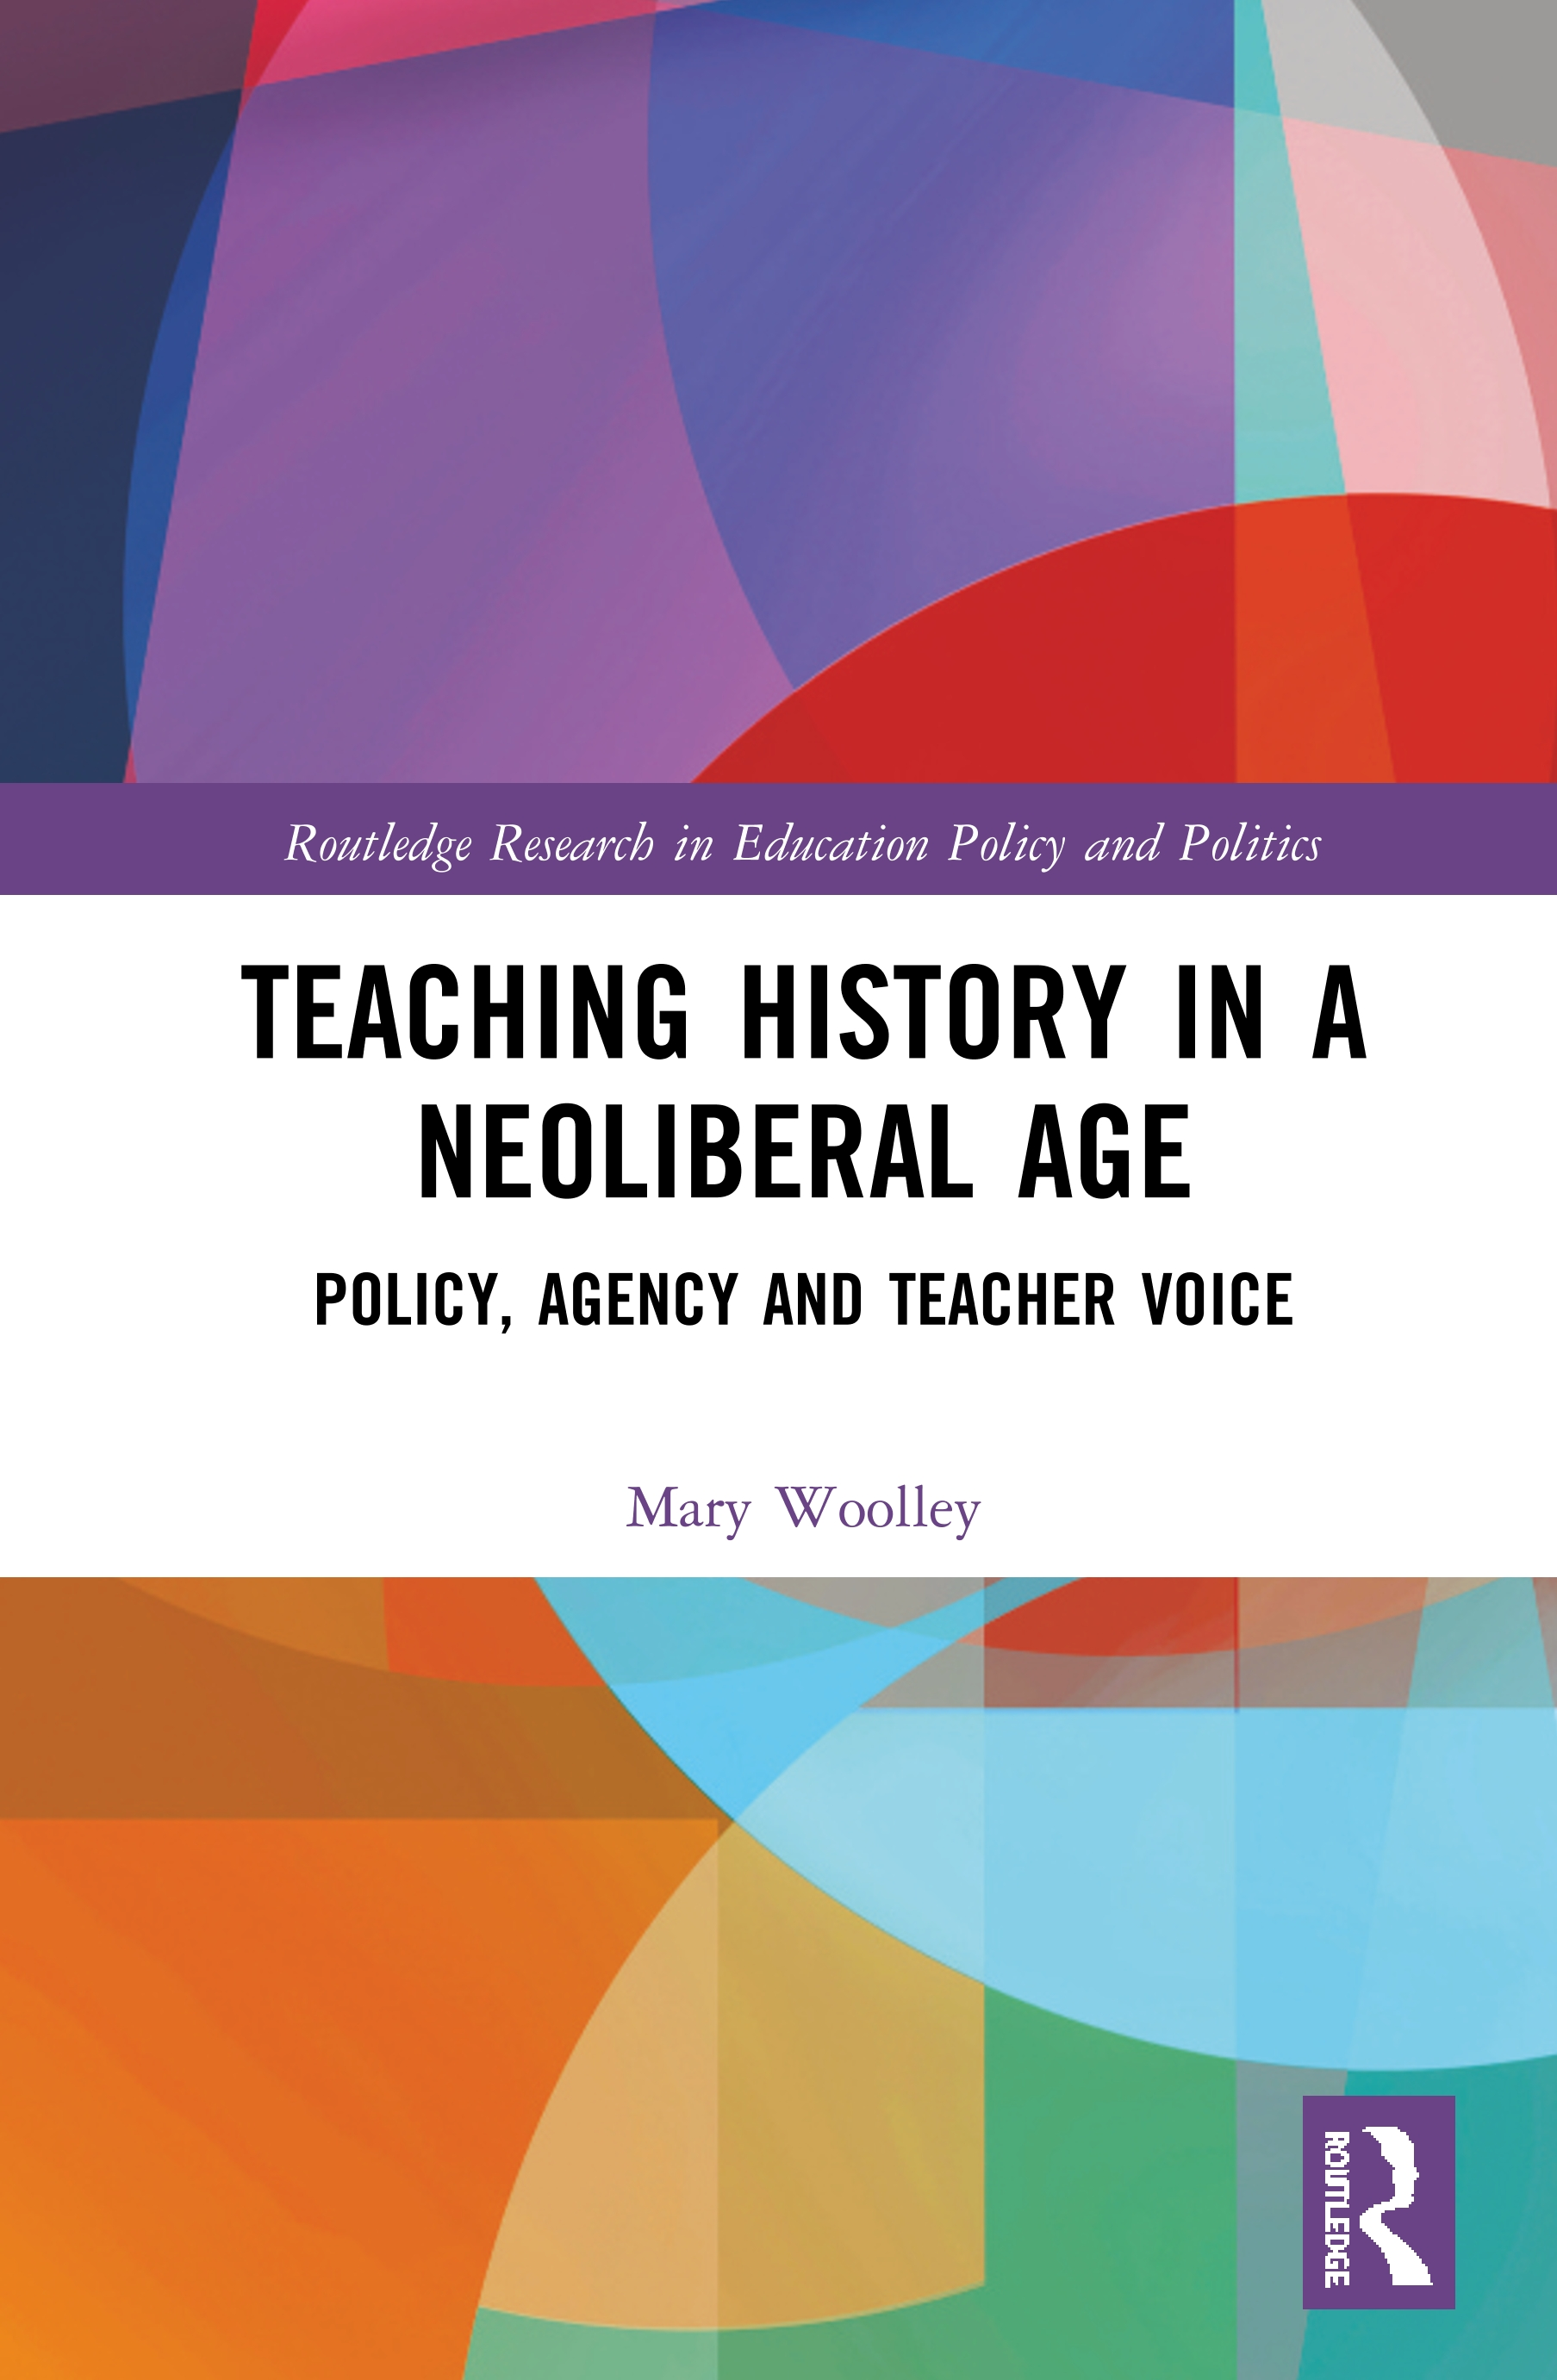 Teaching History in a Neoliberal Age: Policy, Agency and Teacher Voice book cover